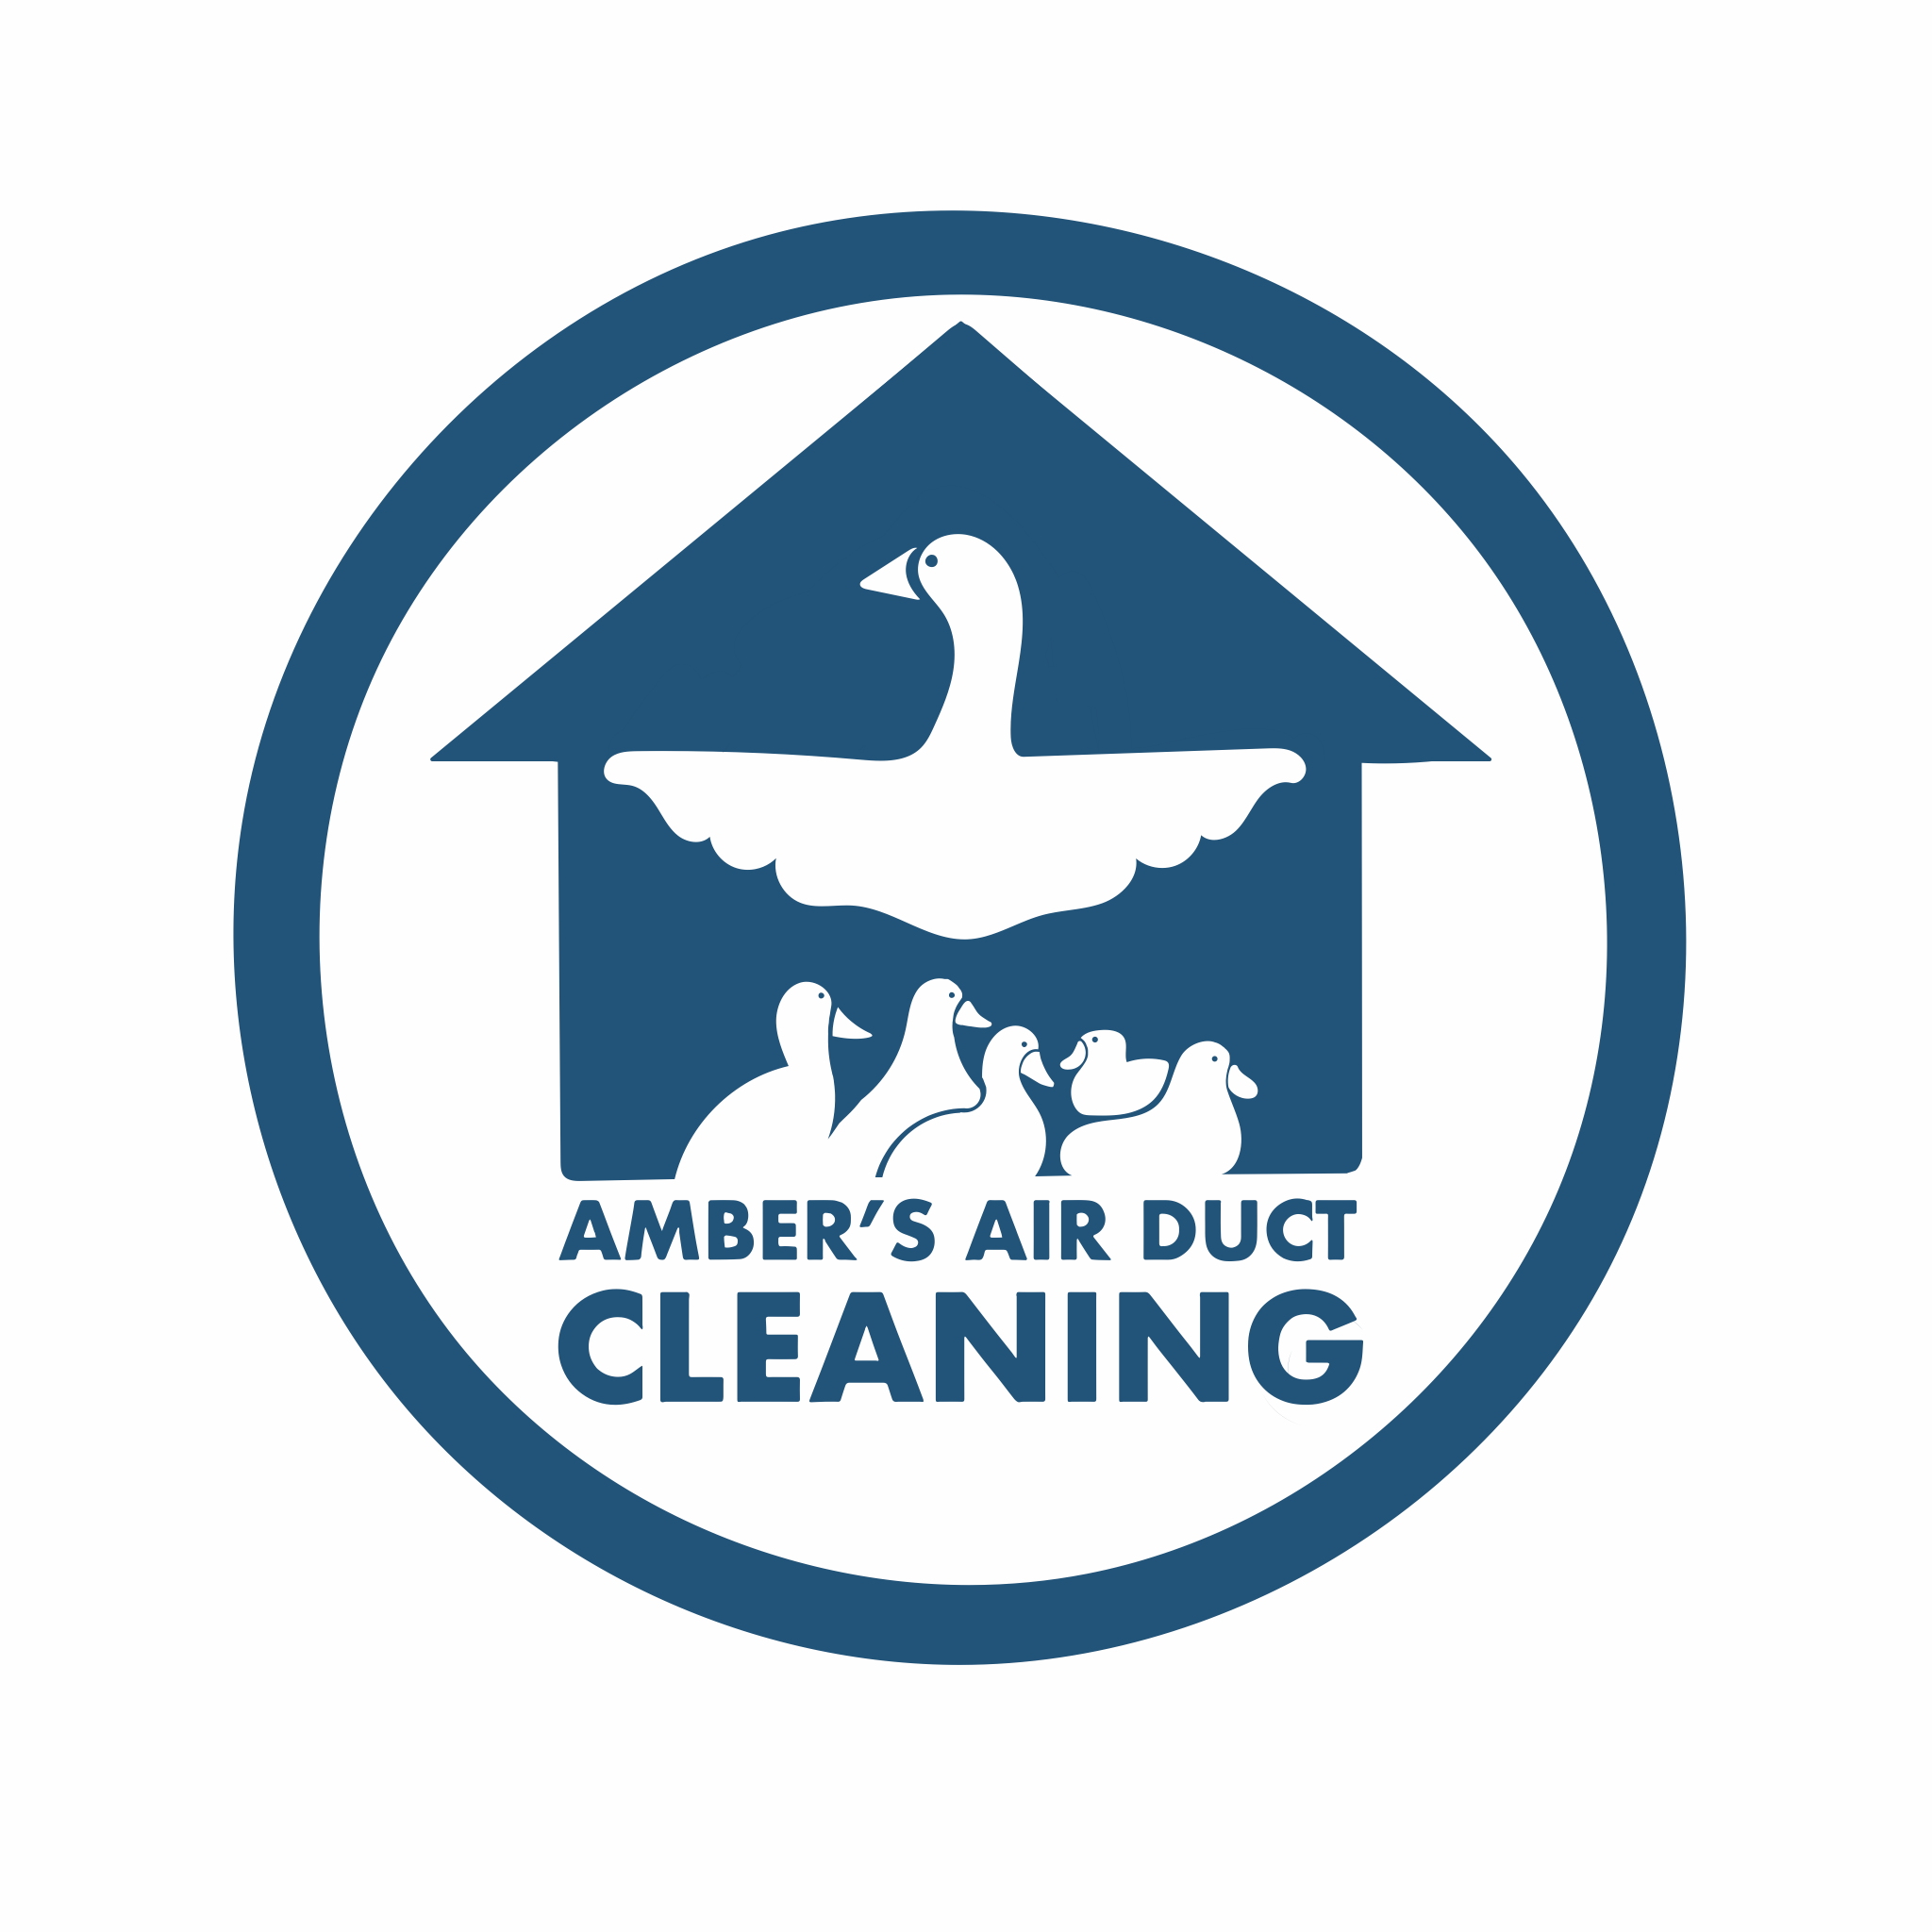 Amber's Air Duct Cleaning Logo